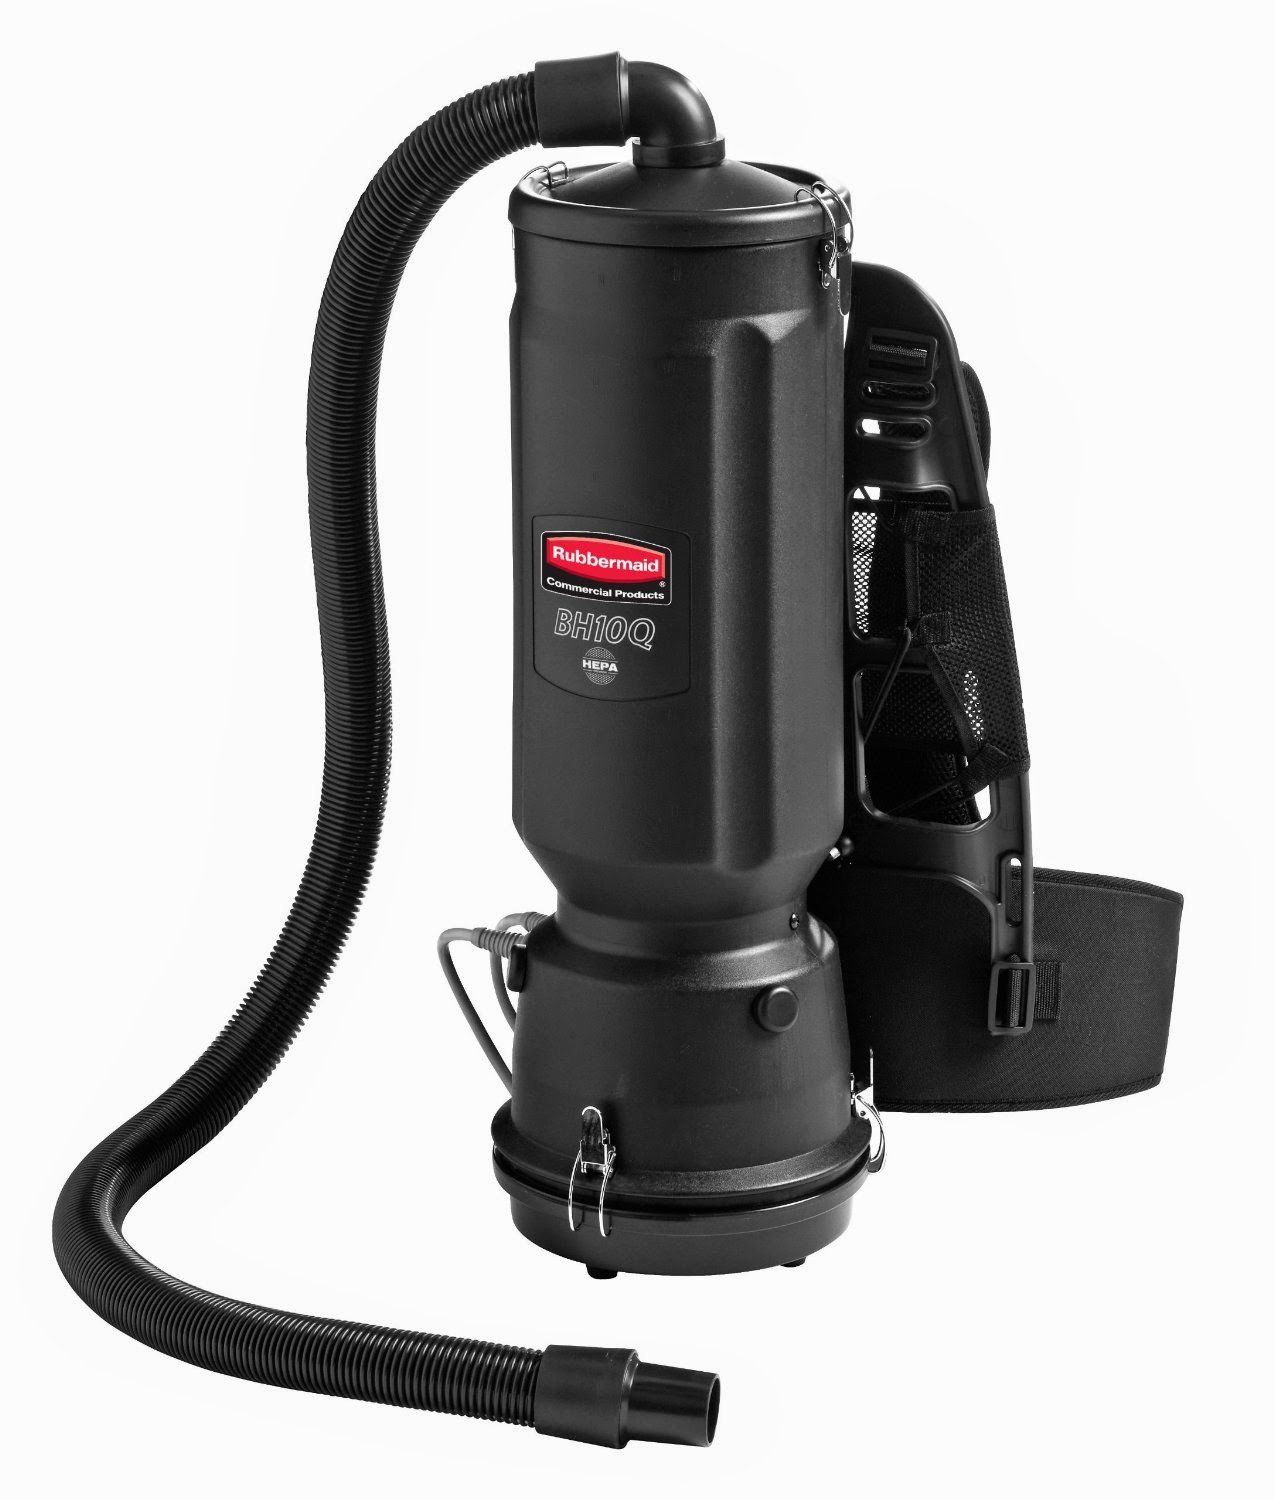 Black Rubbermaid Commercial Executive Backpack Vacuum Cleaner